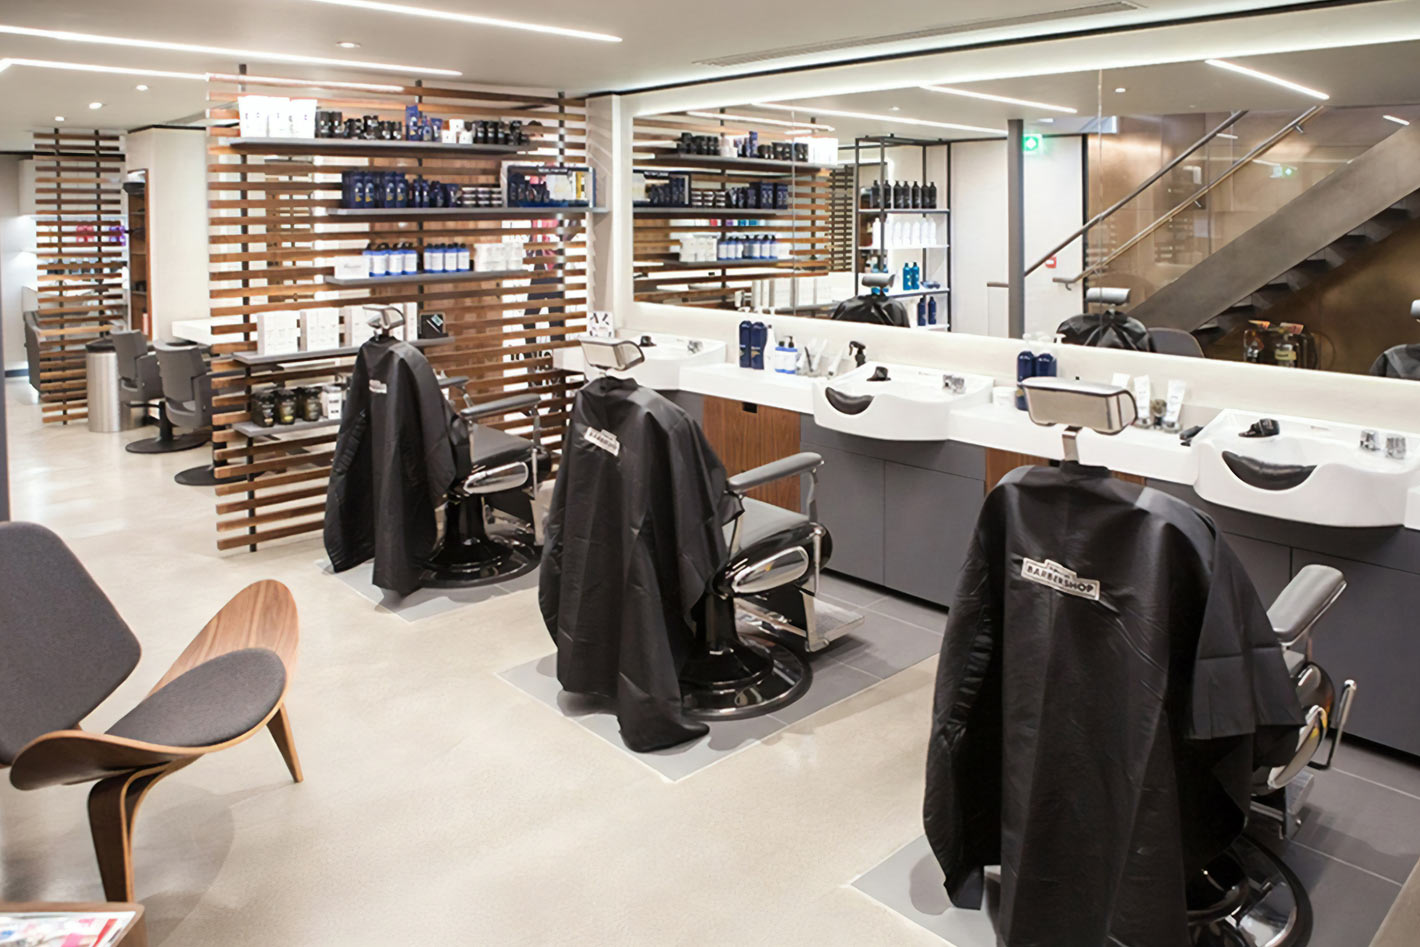 Commercial Lighting Design Toni Guy Hair Salon Darklight Design Lighting Design Supply